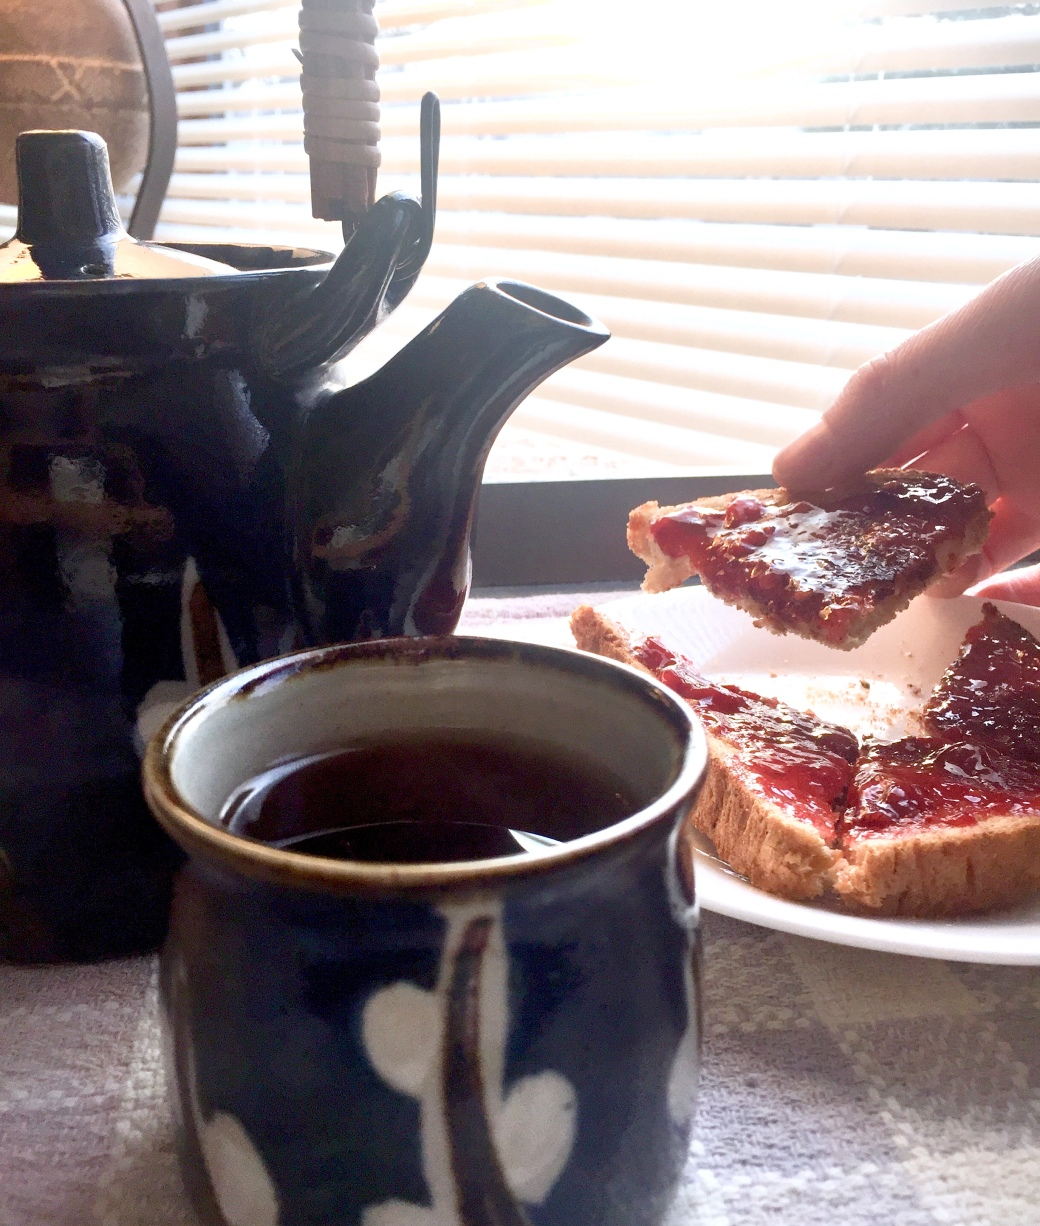 Teatime with toast, jam, and a blue teapot